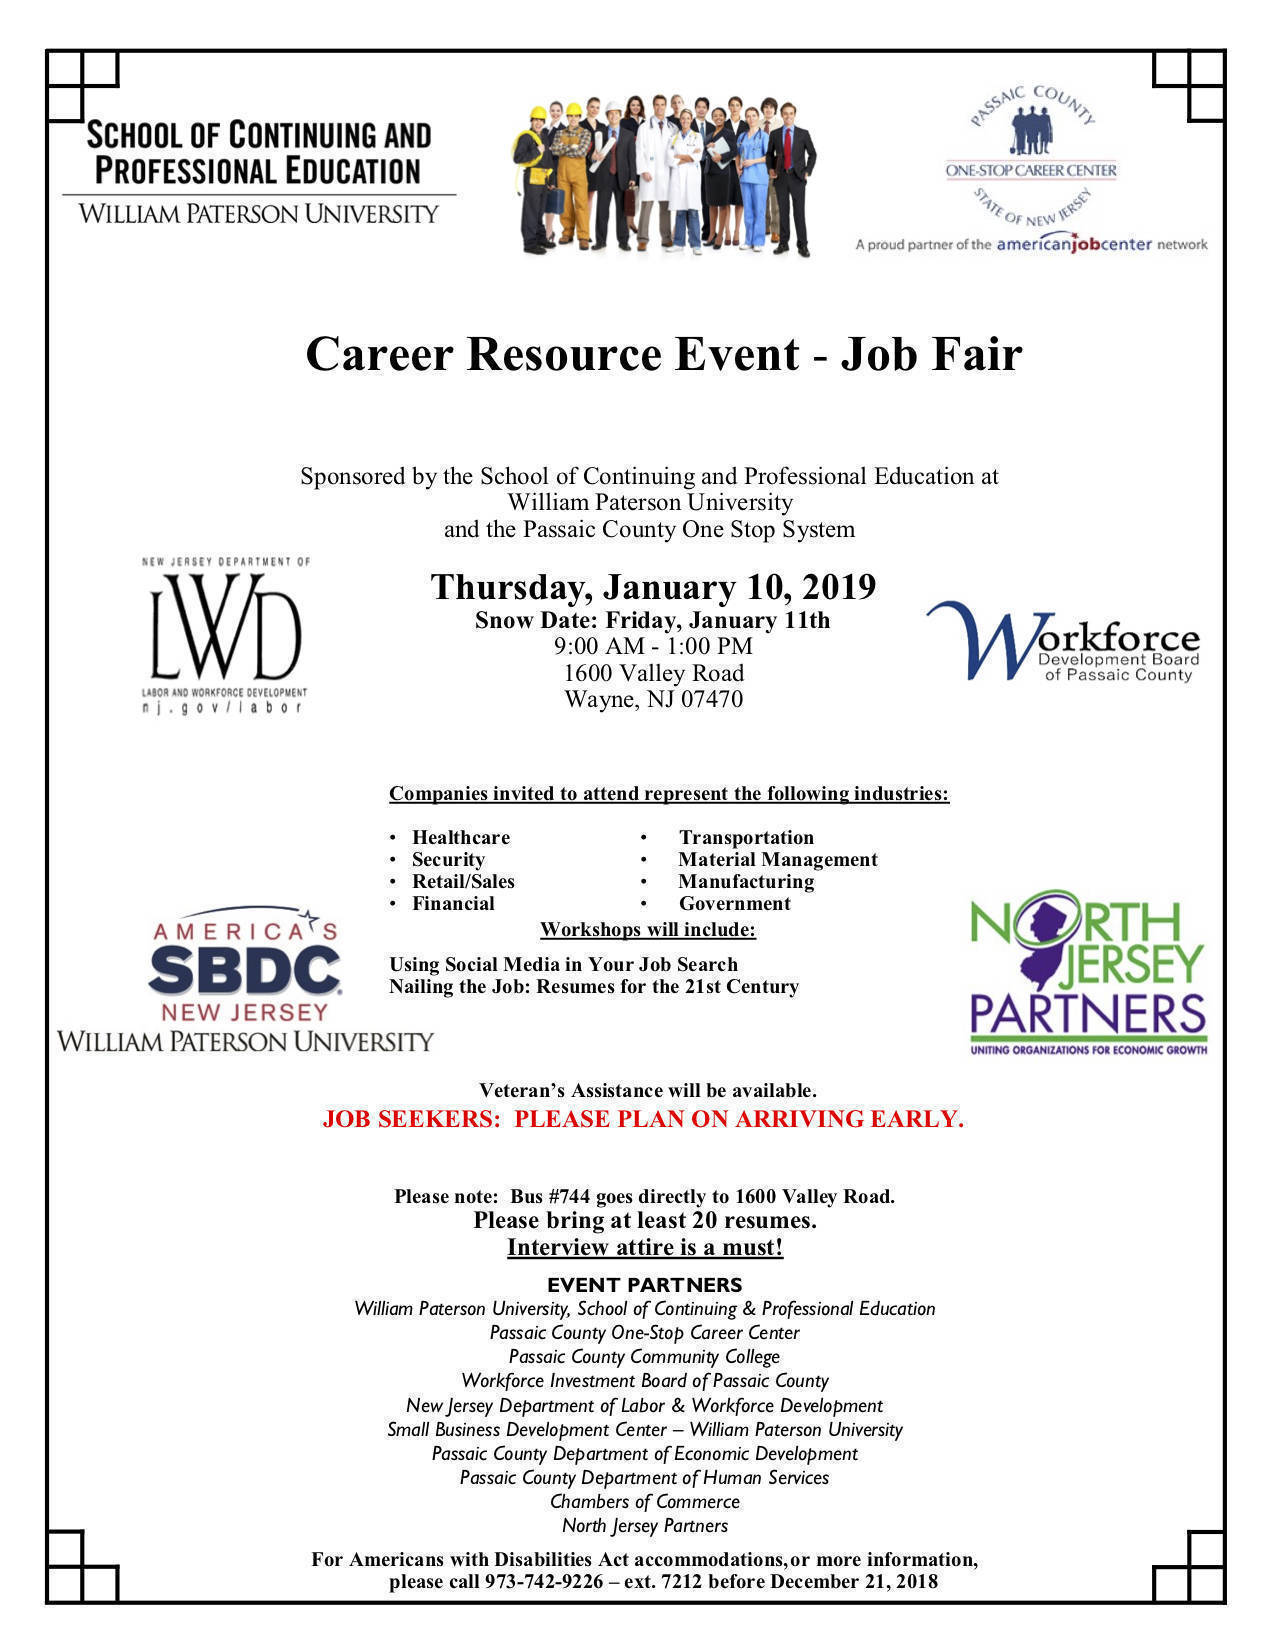 Career Resource, Job Fair To Be Hosted At William Paterson ...